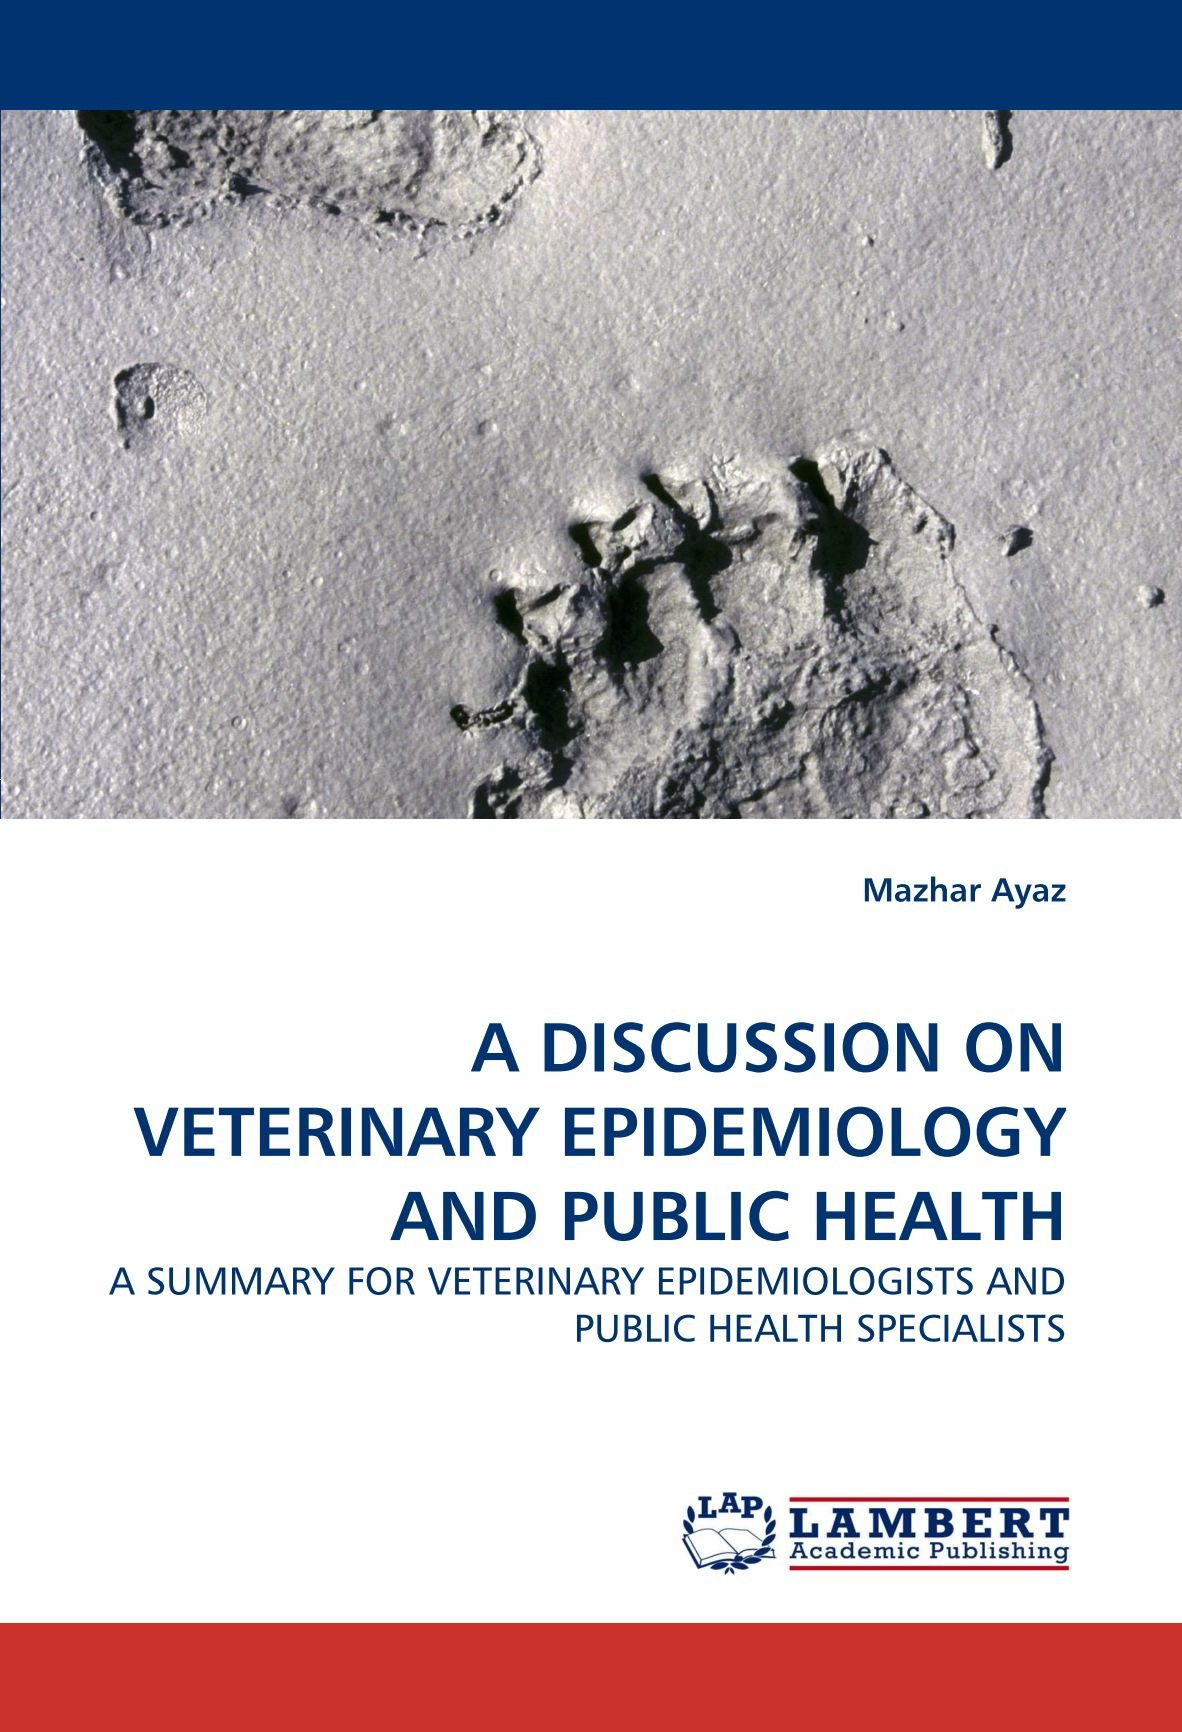 A DISCUSSION ON VETERINARY EPIDEMIOLOGY AND PUBLIC HEALTH: A SUMMARY FOR VETERINARY EPIDEMIOLOGISTS AND PUBLIC HEALTH SPECIALISTS